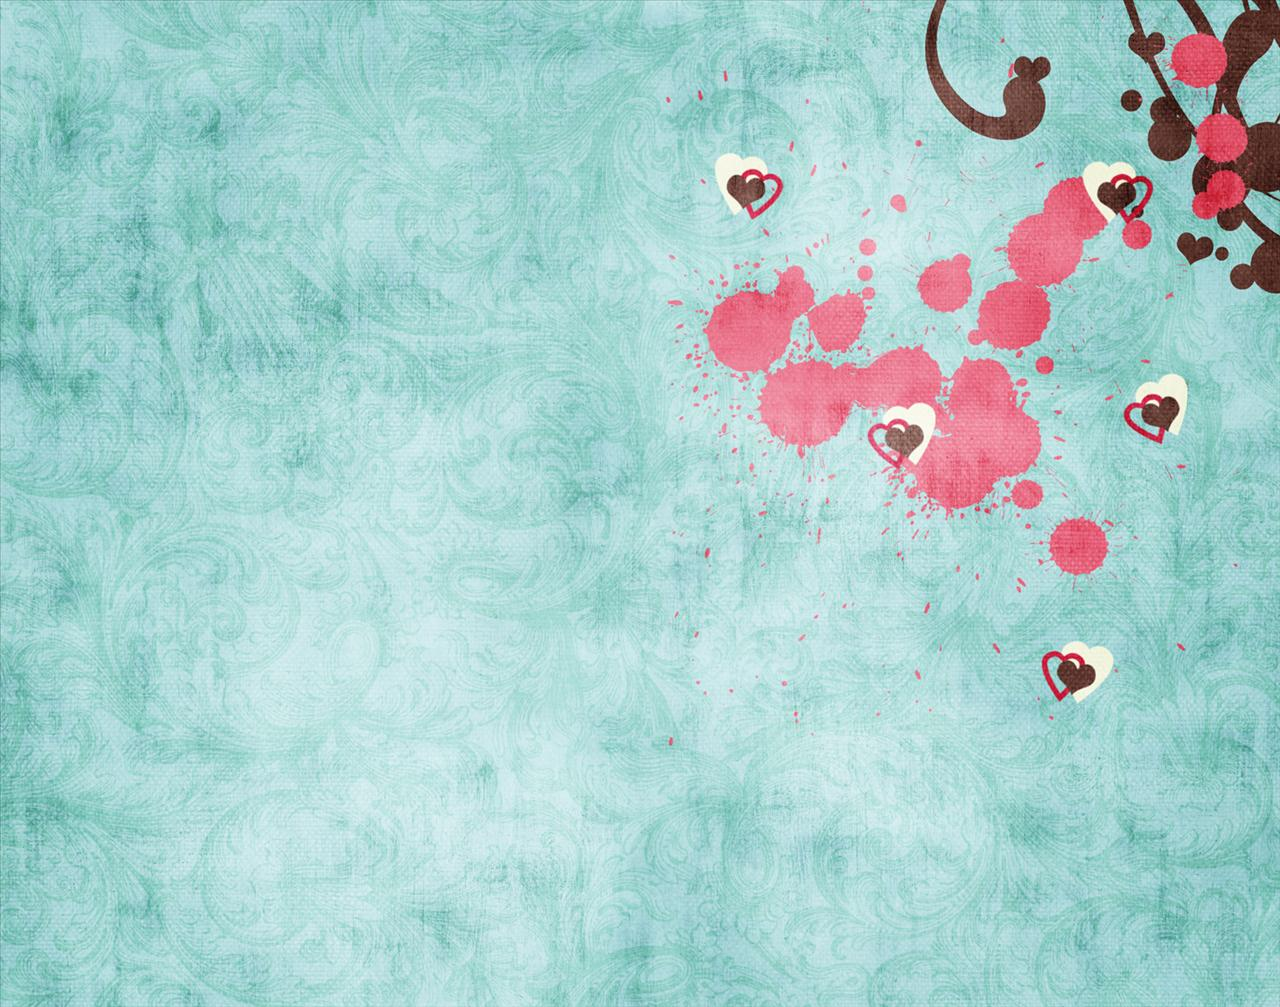 Black and White Wallpapers Turquoise Swirl Lovely Heart Wallpaper 1280x1007